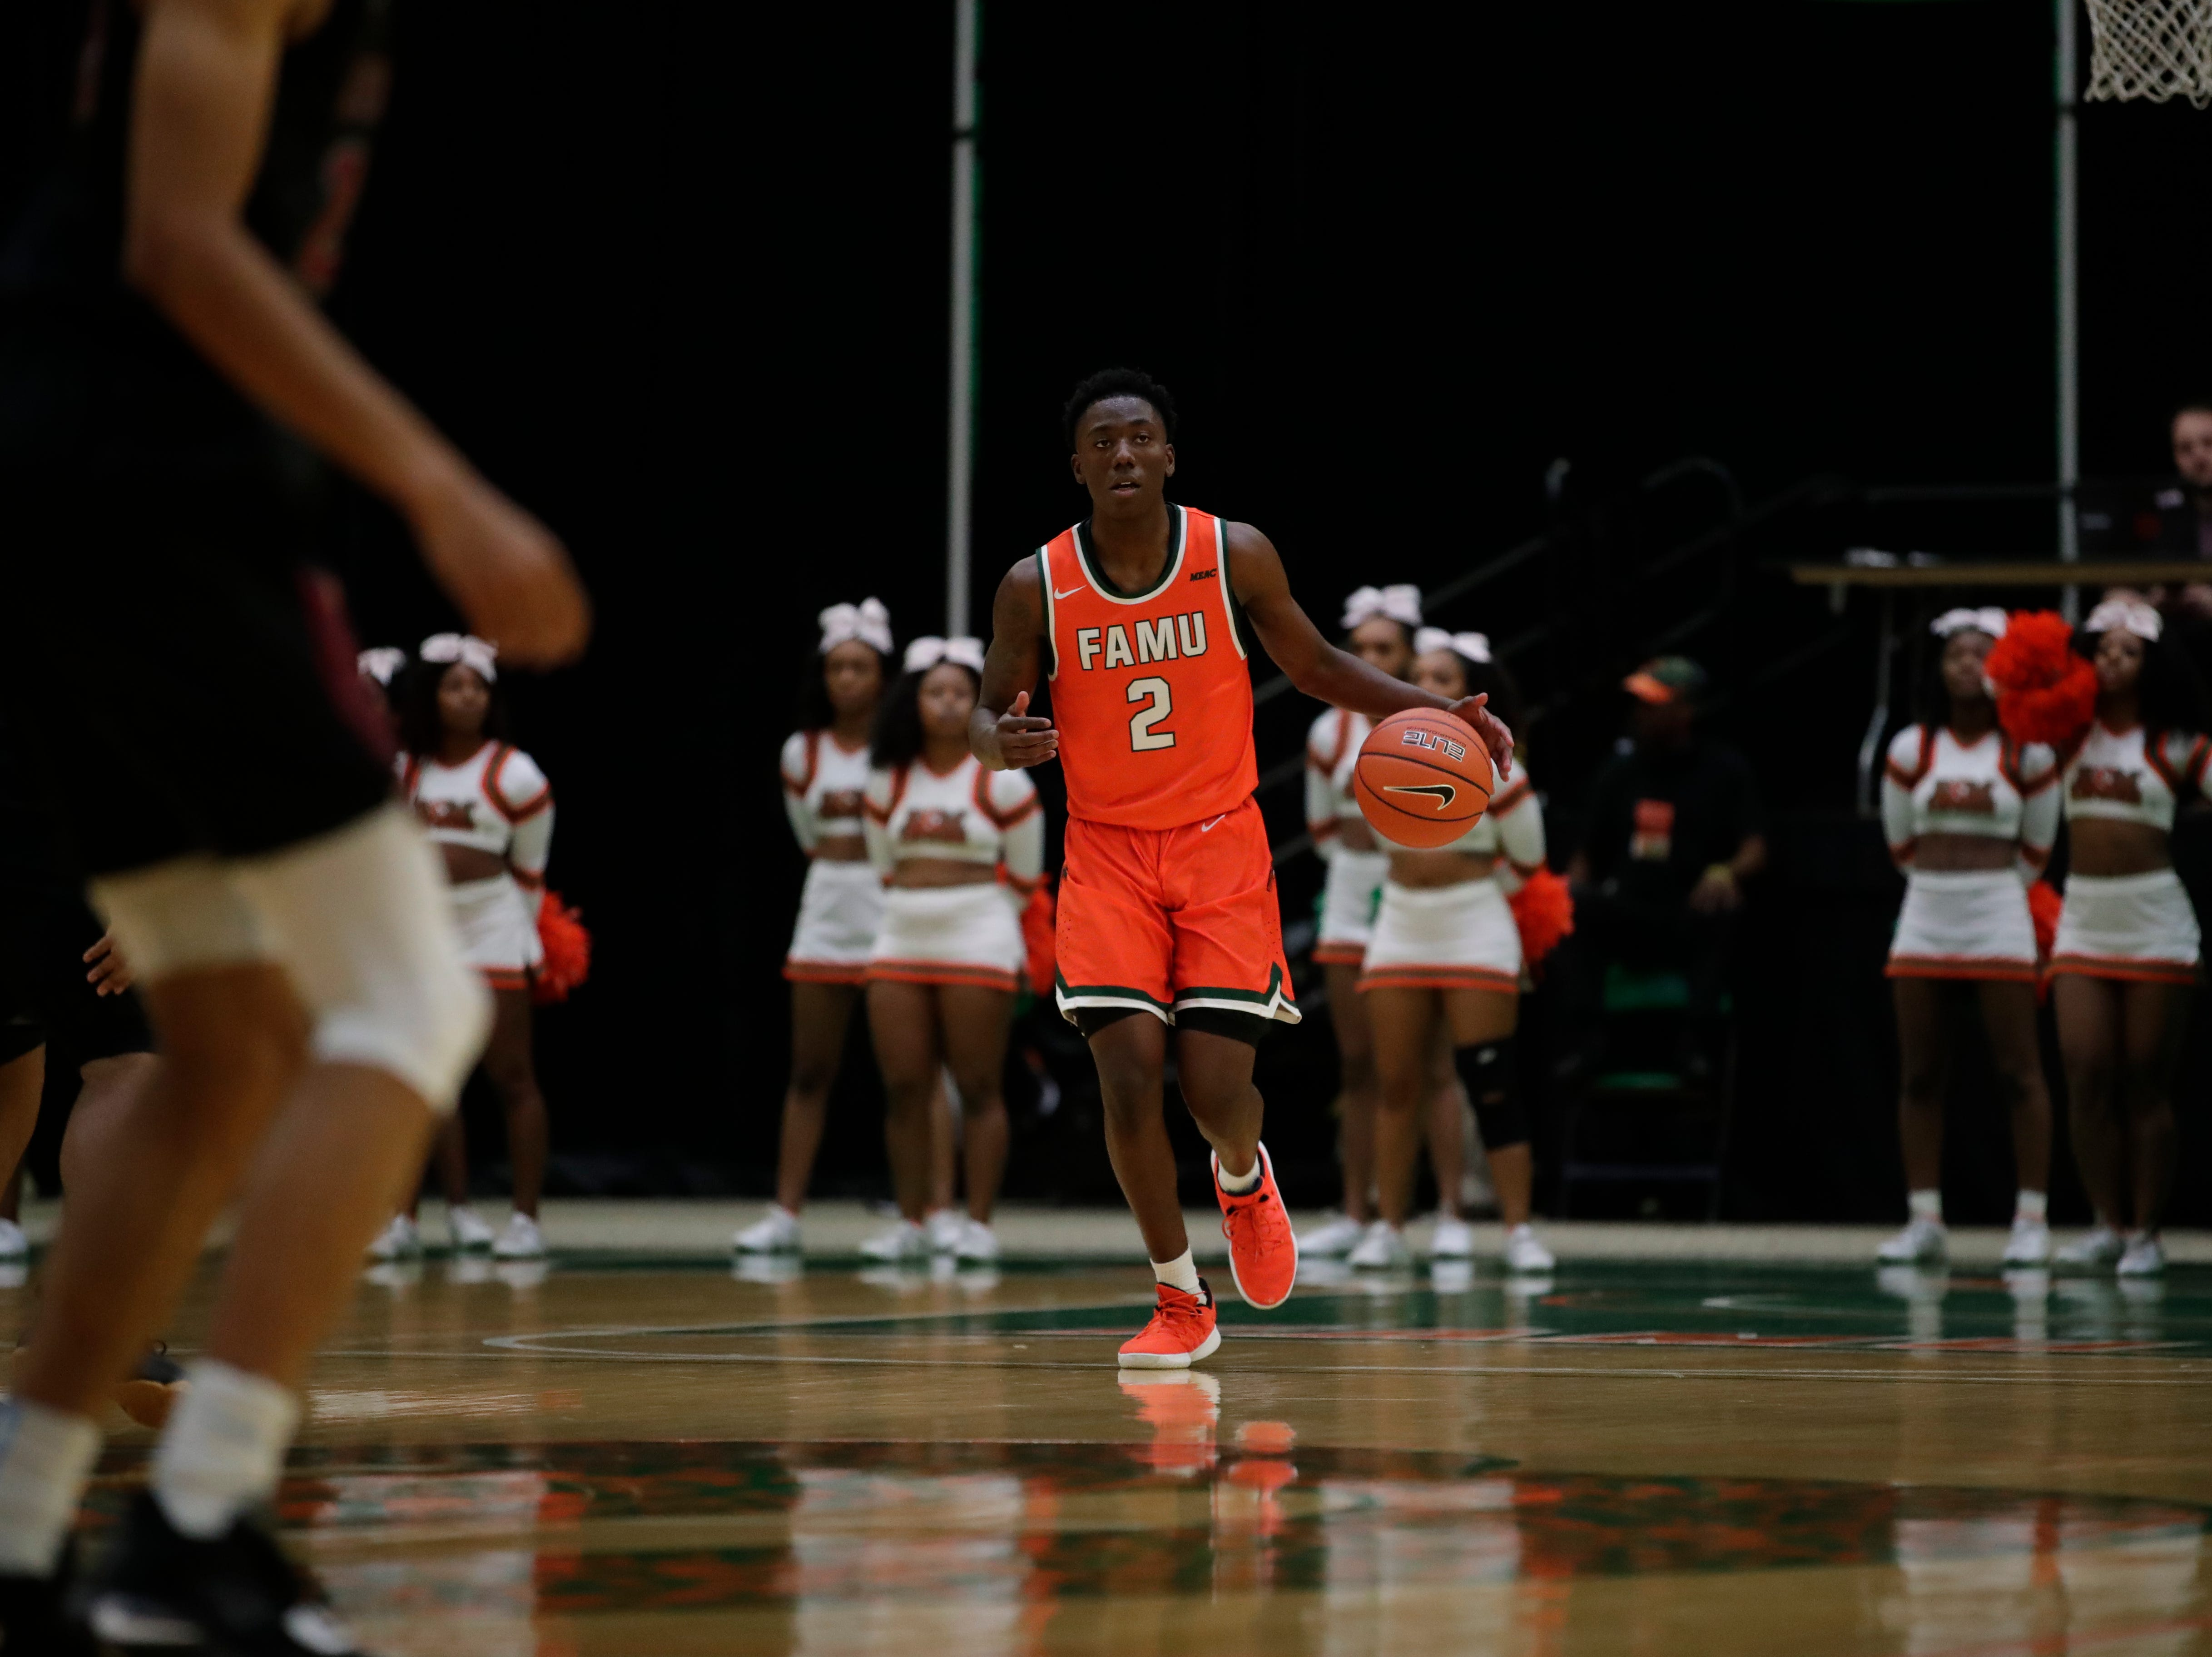 Florida A&M Rattlers guard Kamron Reaves (2) brings the ball up the court during a game between FAMU and North Carolina Central at the Alfred Lawson Jr. Multipurpose Center Monday, Feb. 4, 2019.